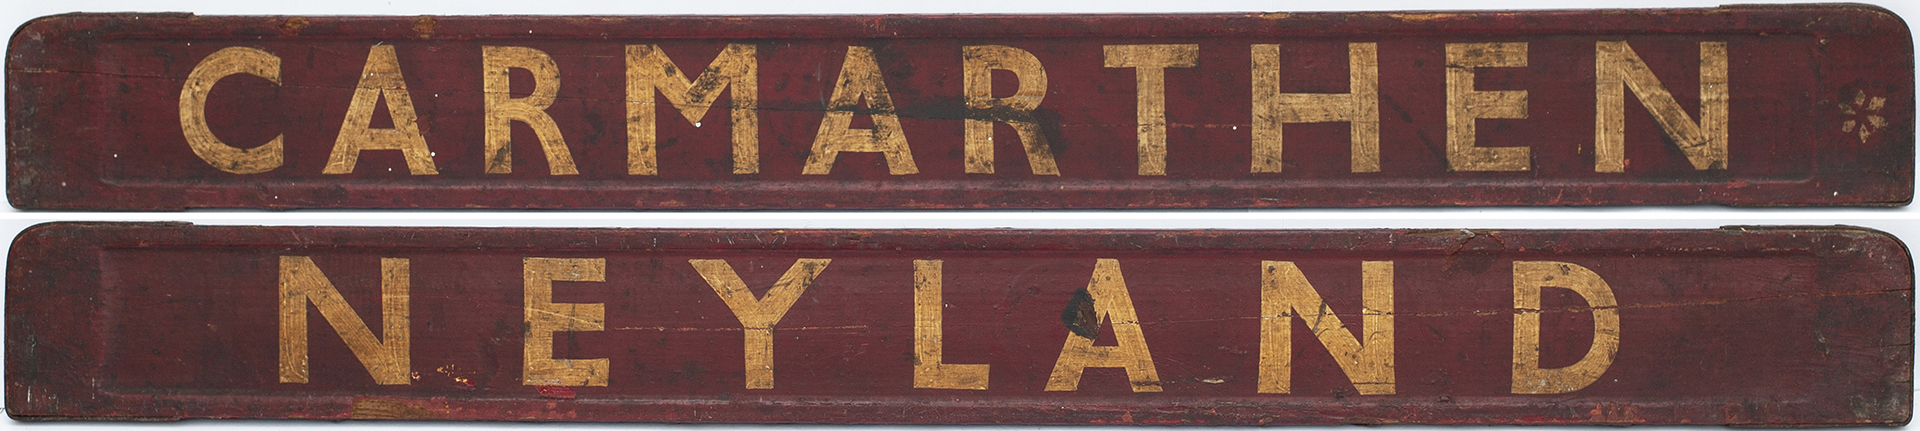 BR-W carriage board NEYLAND - CARMARTHEN. Wood with steel ends, in good condition with a split.